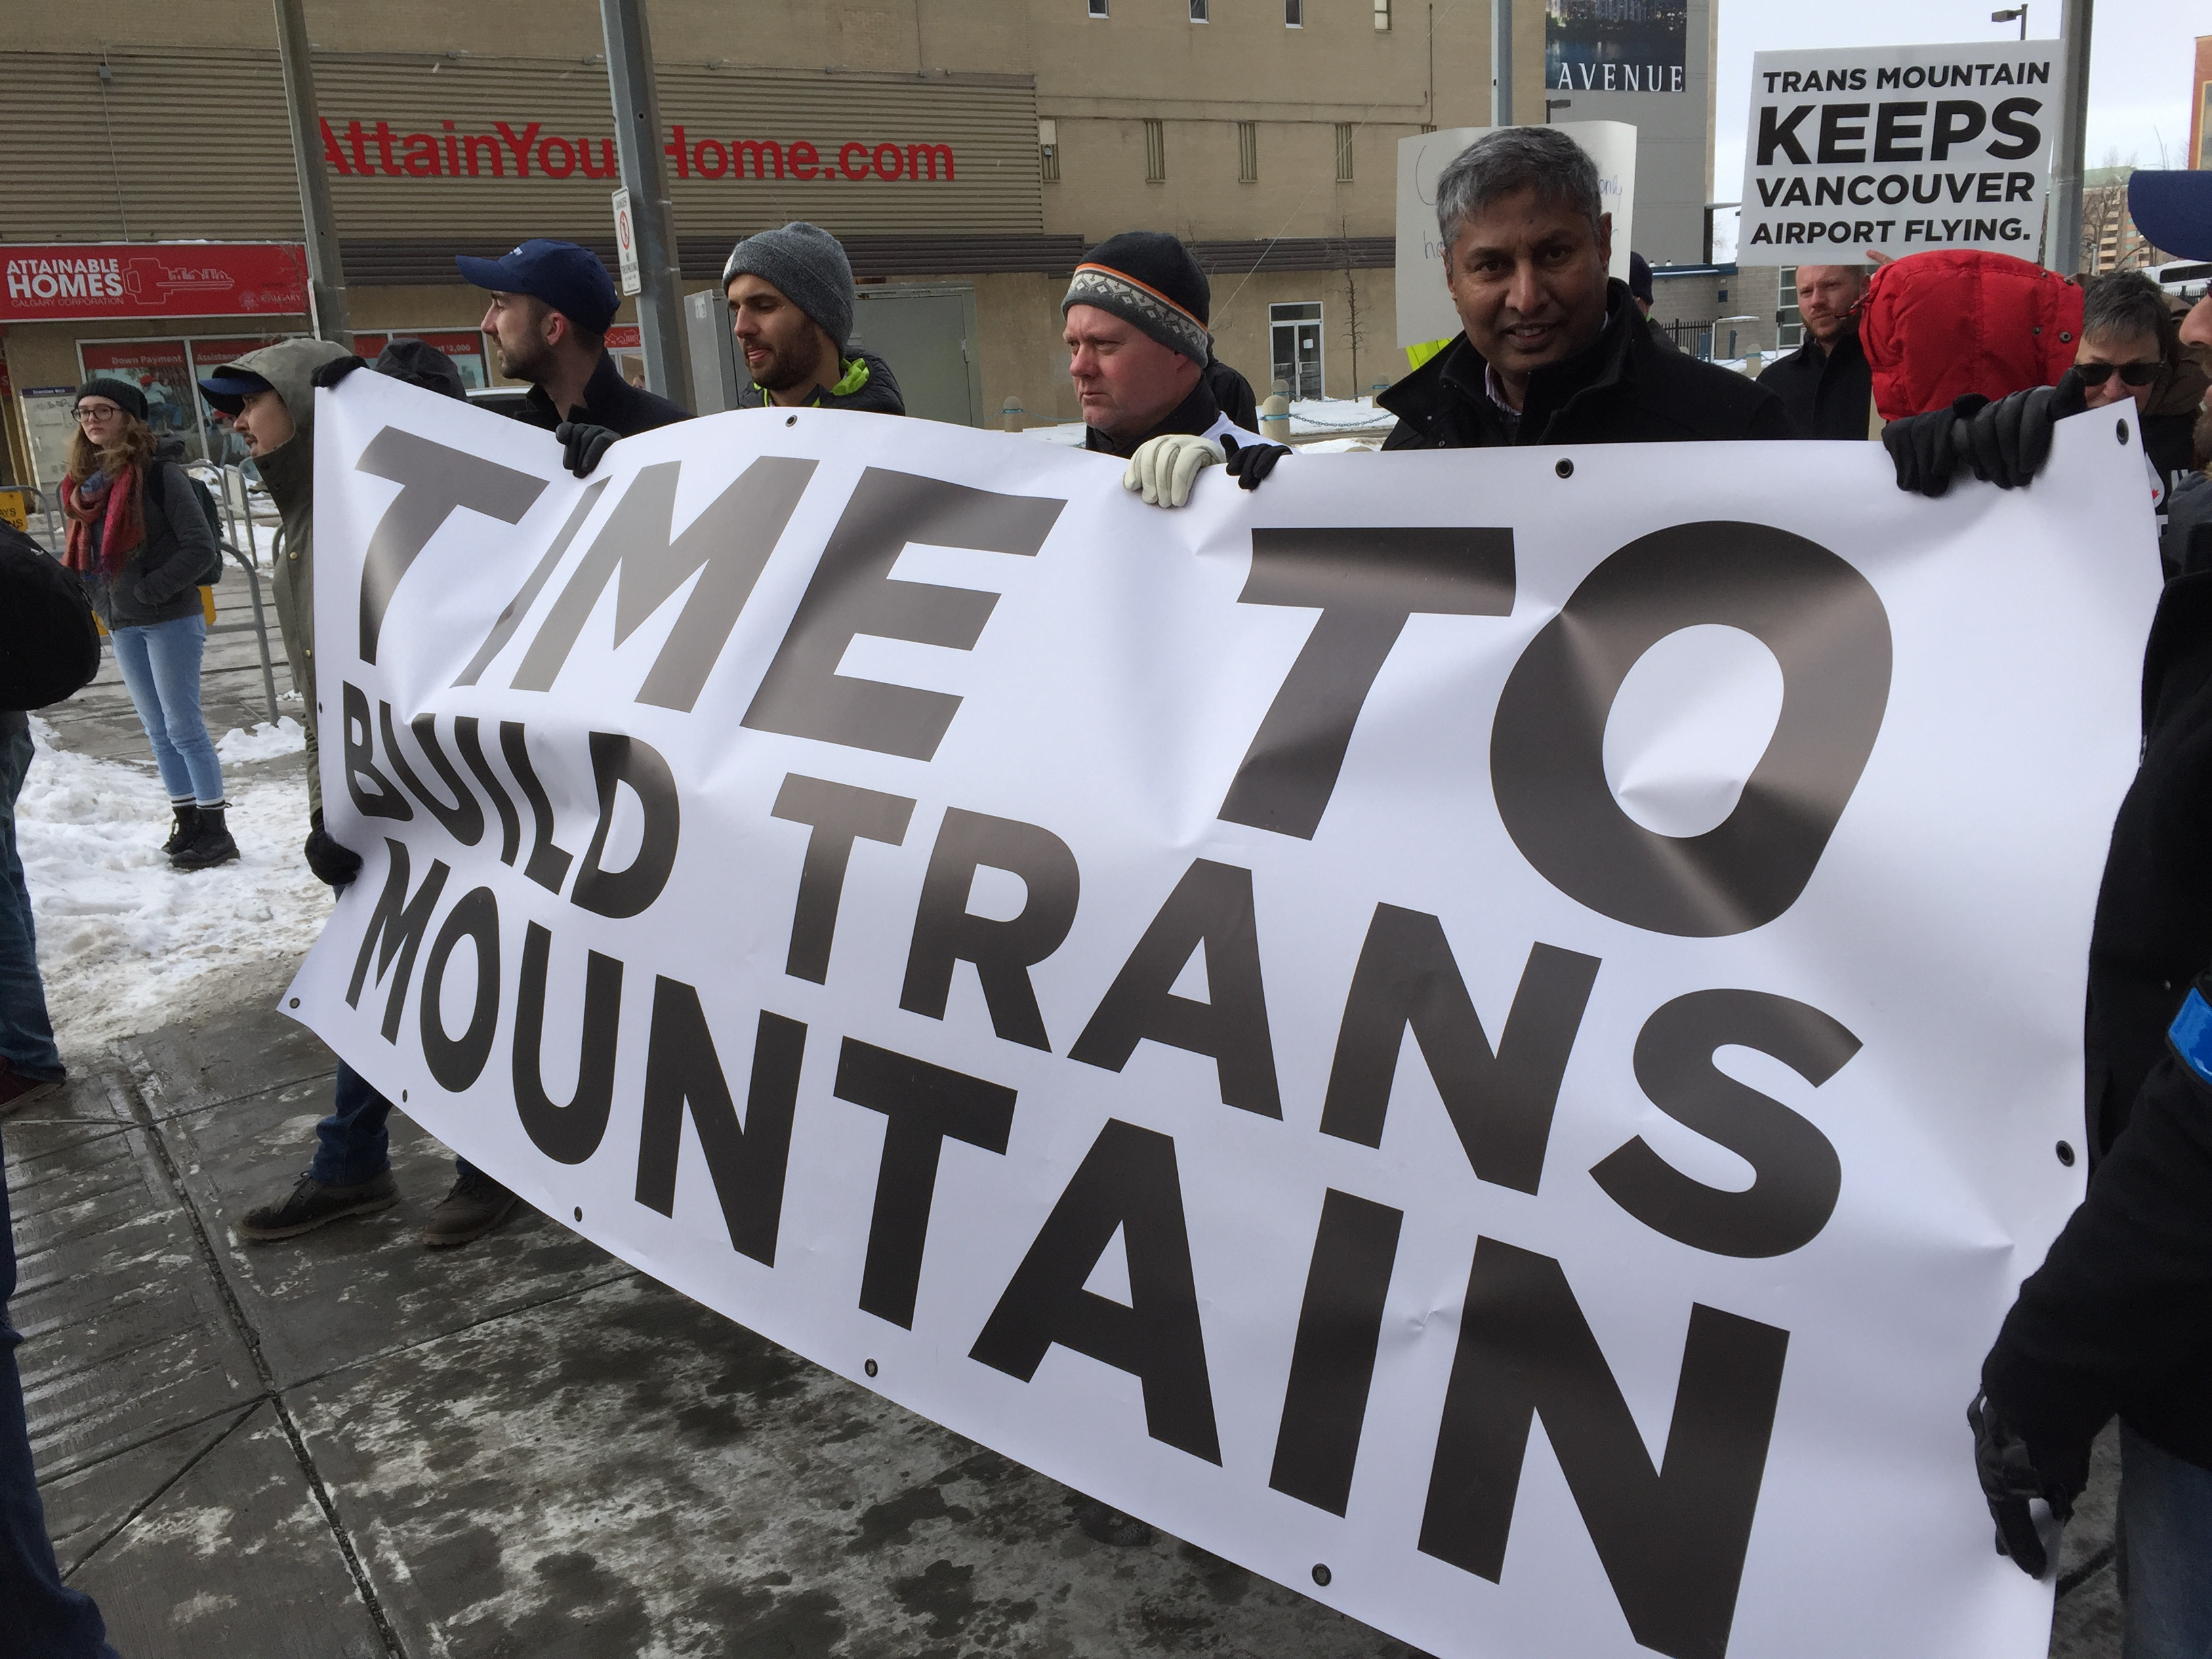 https://d3n8a8pro7vhmx.cloudfront.net/prasadpanda/pages/13/features/original/Attending_a_Rally_for_the_Trans_Mountain_Pipeline.JPG?1525821063